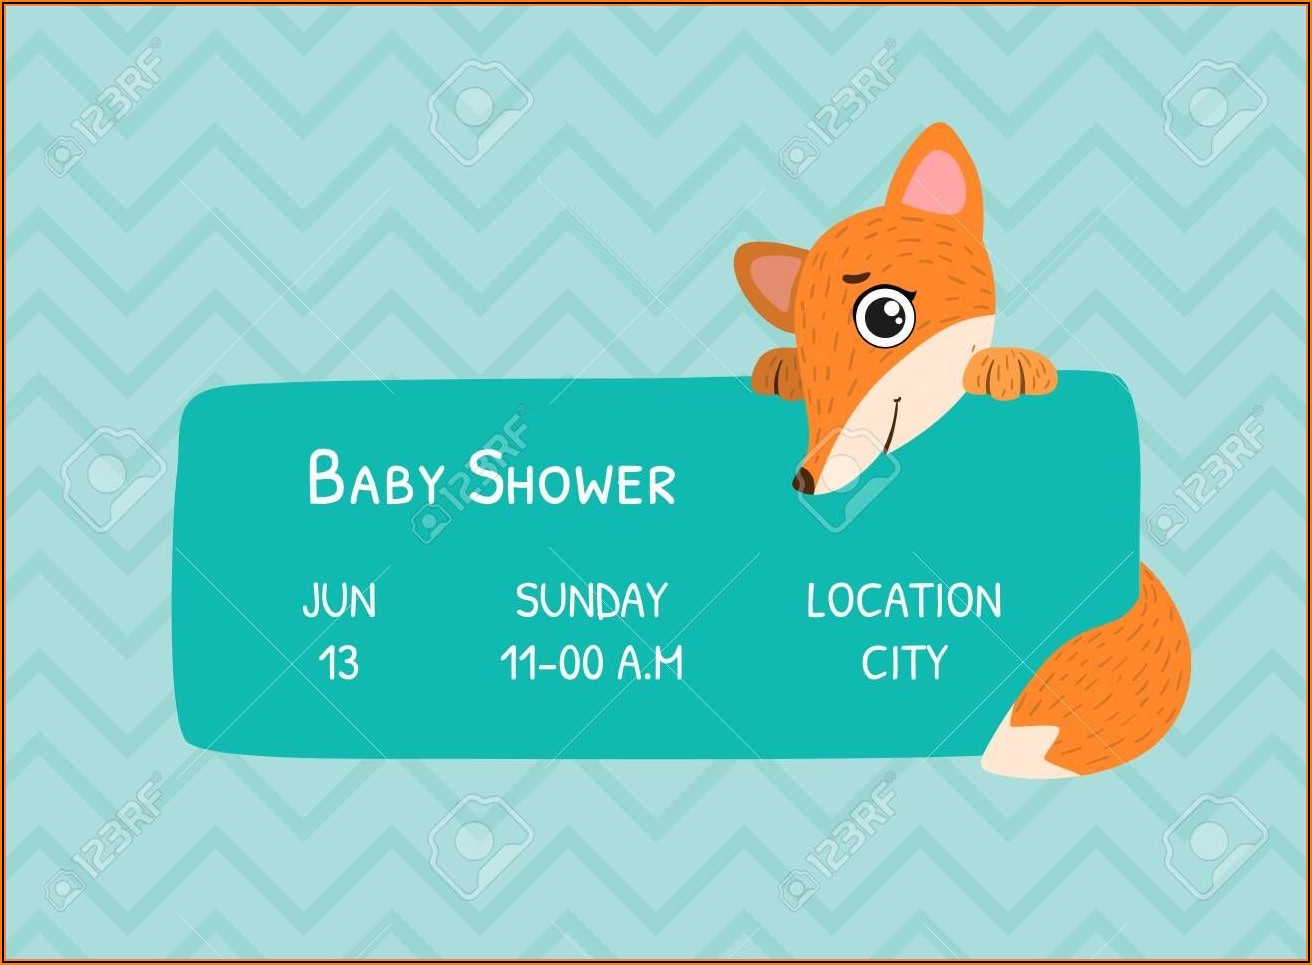 Invitation Card Template For Baby Shower